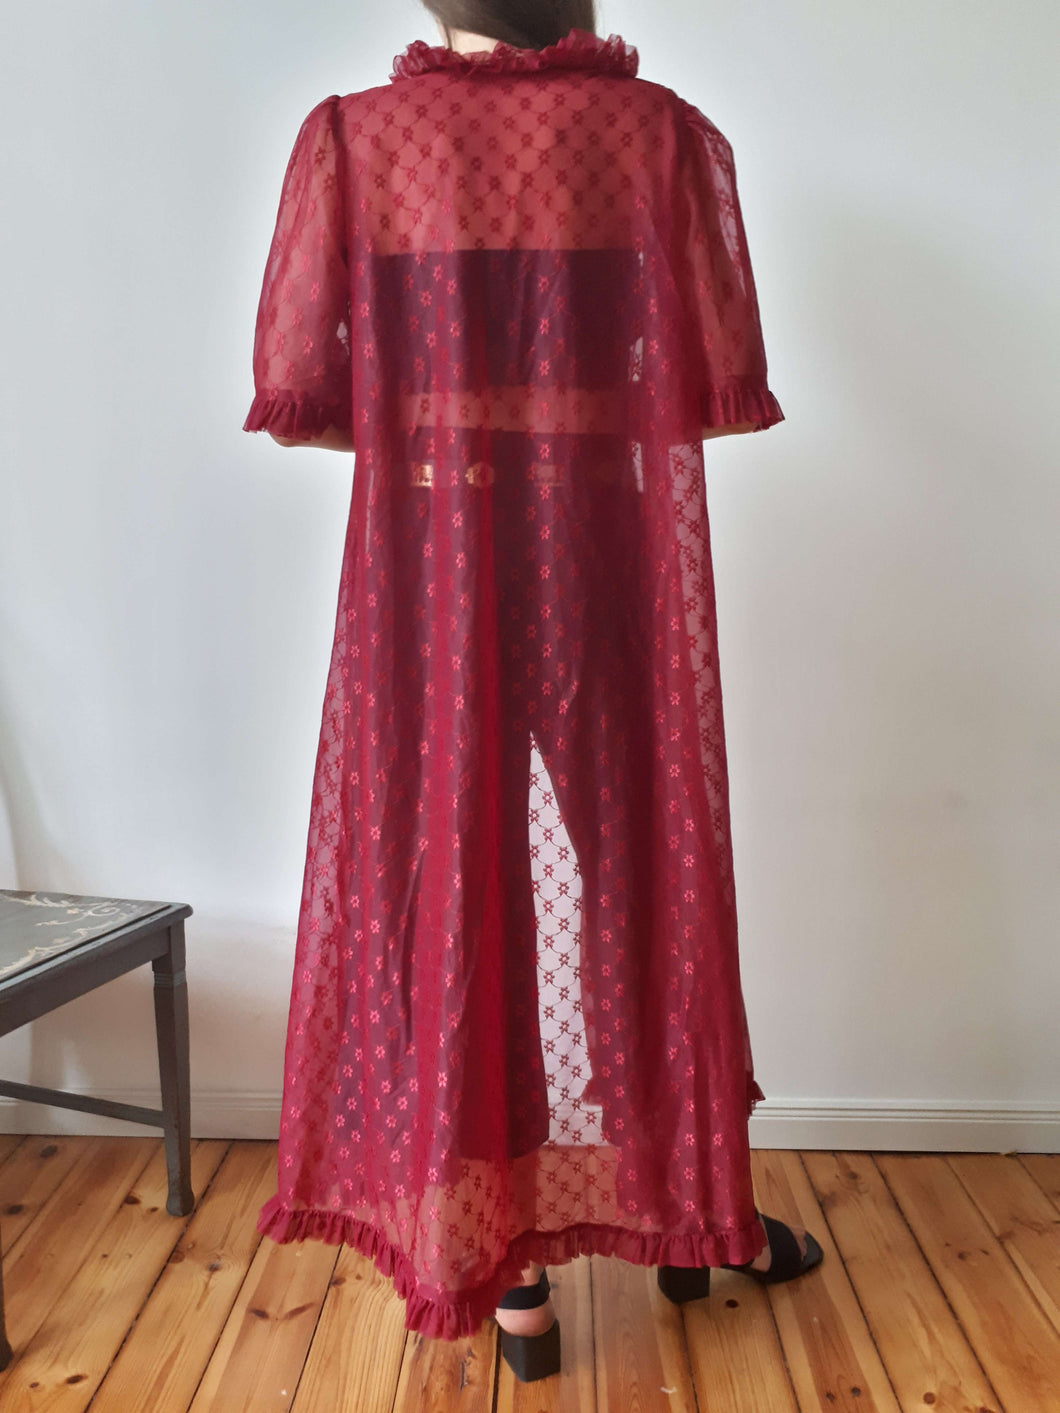 SHEER ORGANZA ROBE | RUFFLE | S/M/L:[Past out]:[vintage clothes]